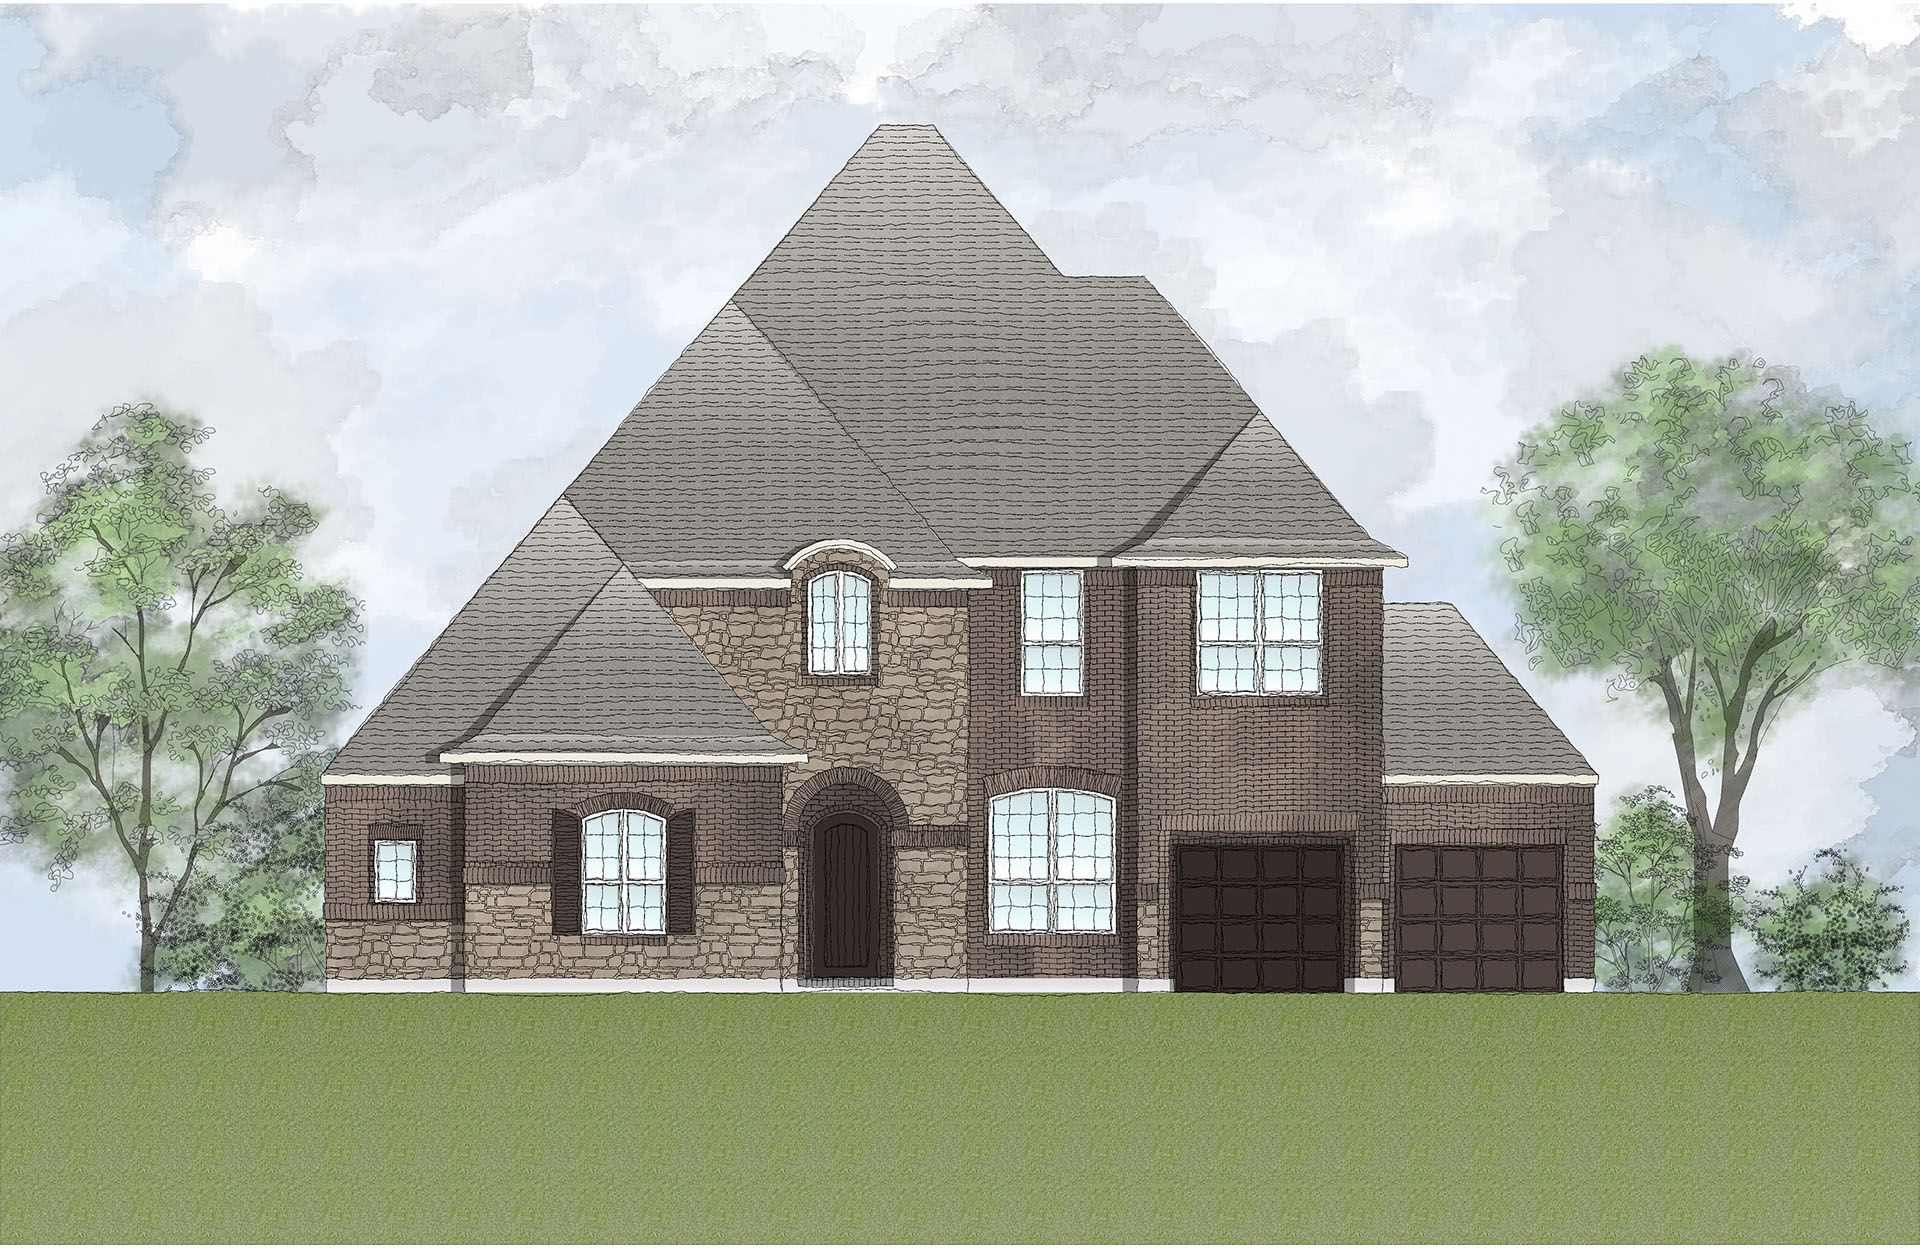 Single Family for Sale at Royal Brook At Kingwood - Riviera 3306 Lockridge Harbor Lane Porter, Texas 77365 United States